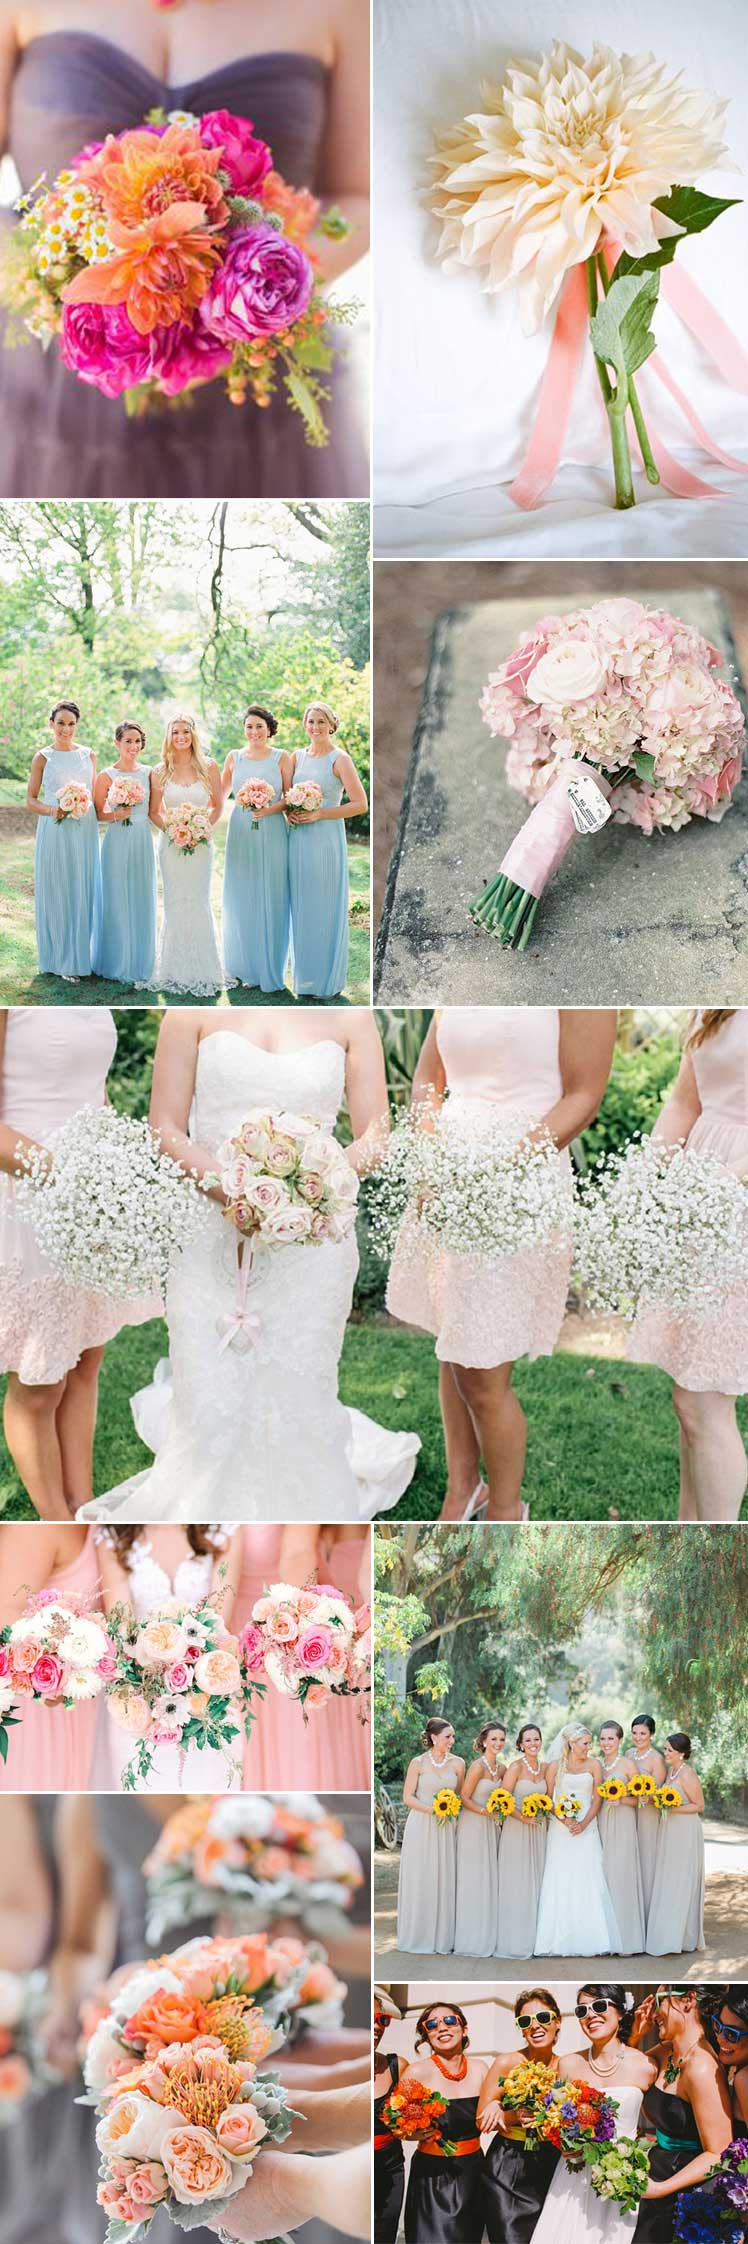 floral posies for bridesmaids